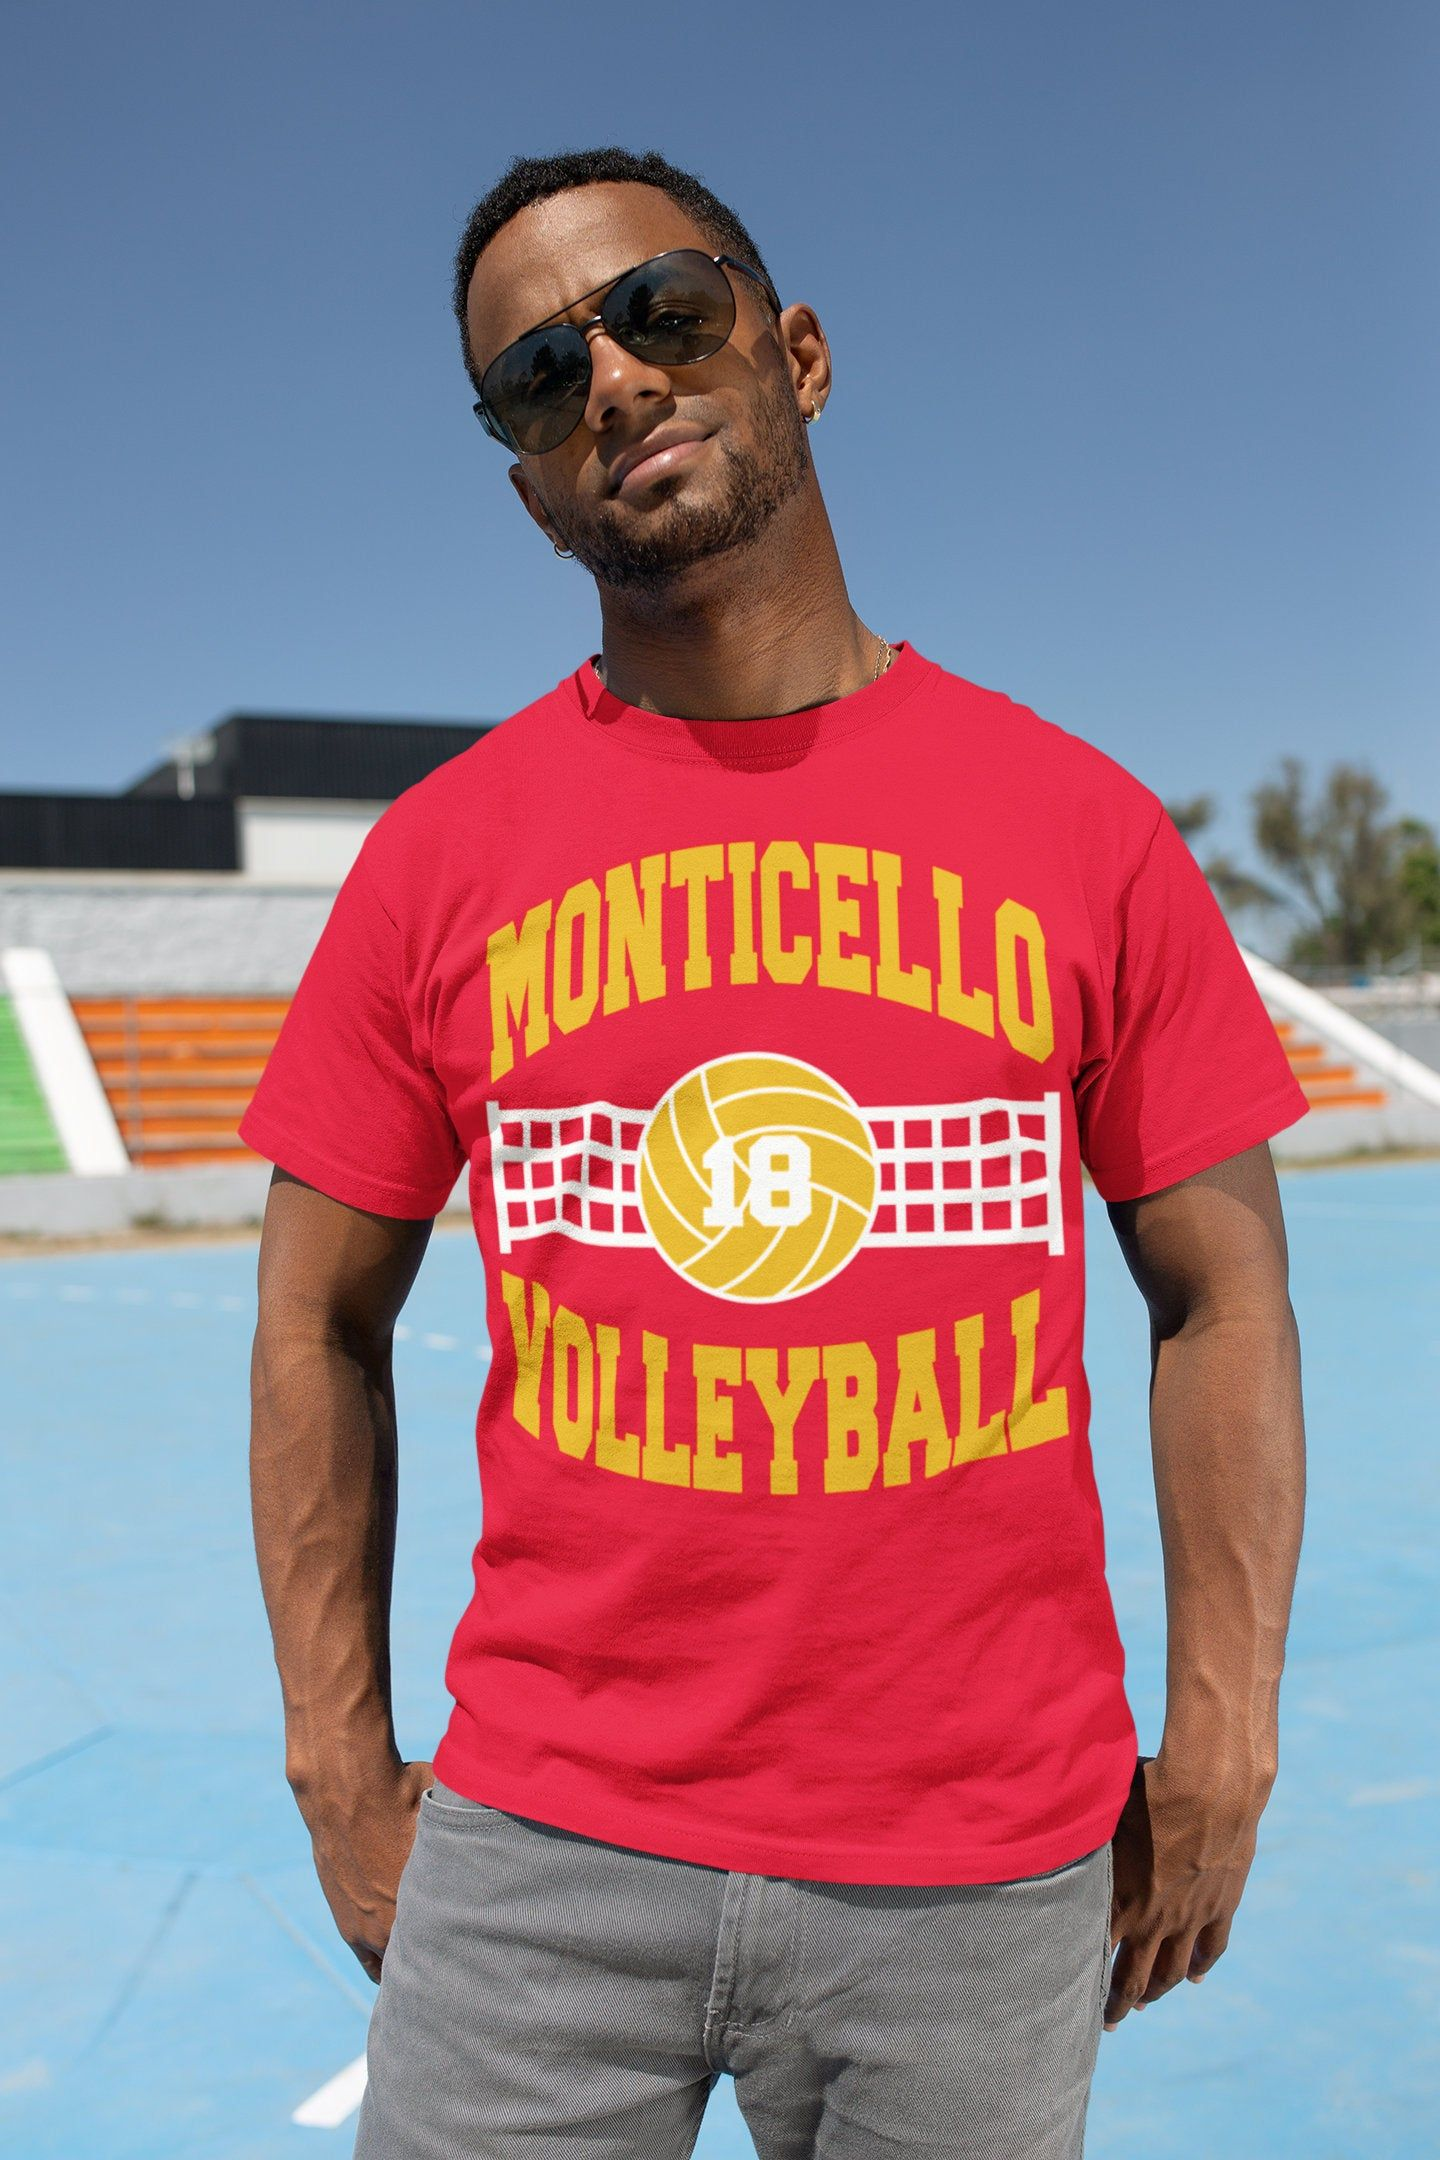 Men S Personalized Volleyball T Shirt Custom Volleyball Team Shirts Volleyball Dad T Shirt Personalized Shirts In 2020 Volleyball Team Shirts Team Shirts Volleyball Team